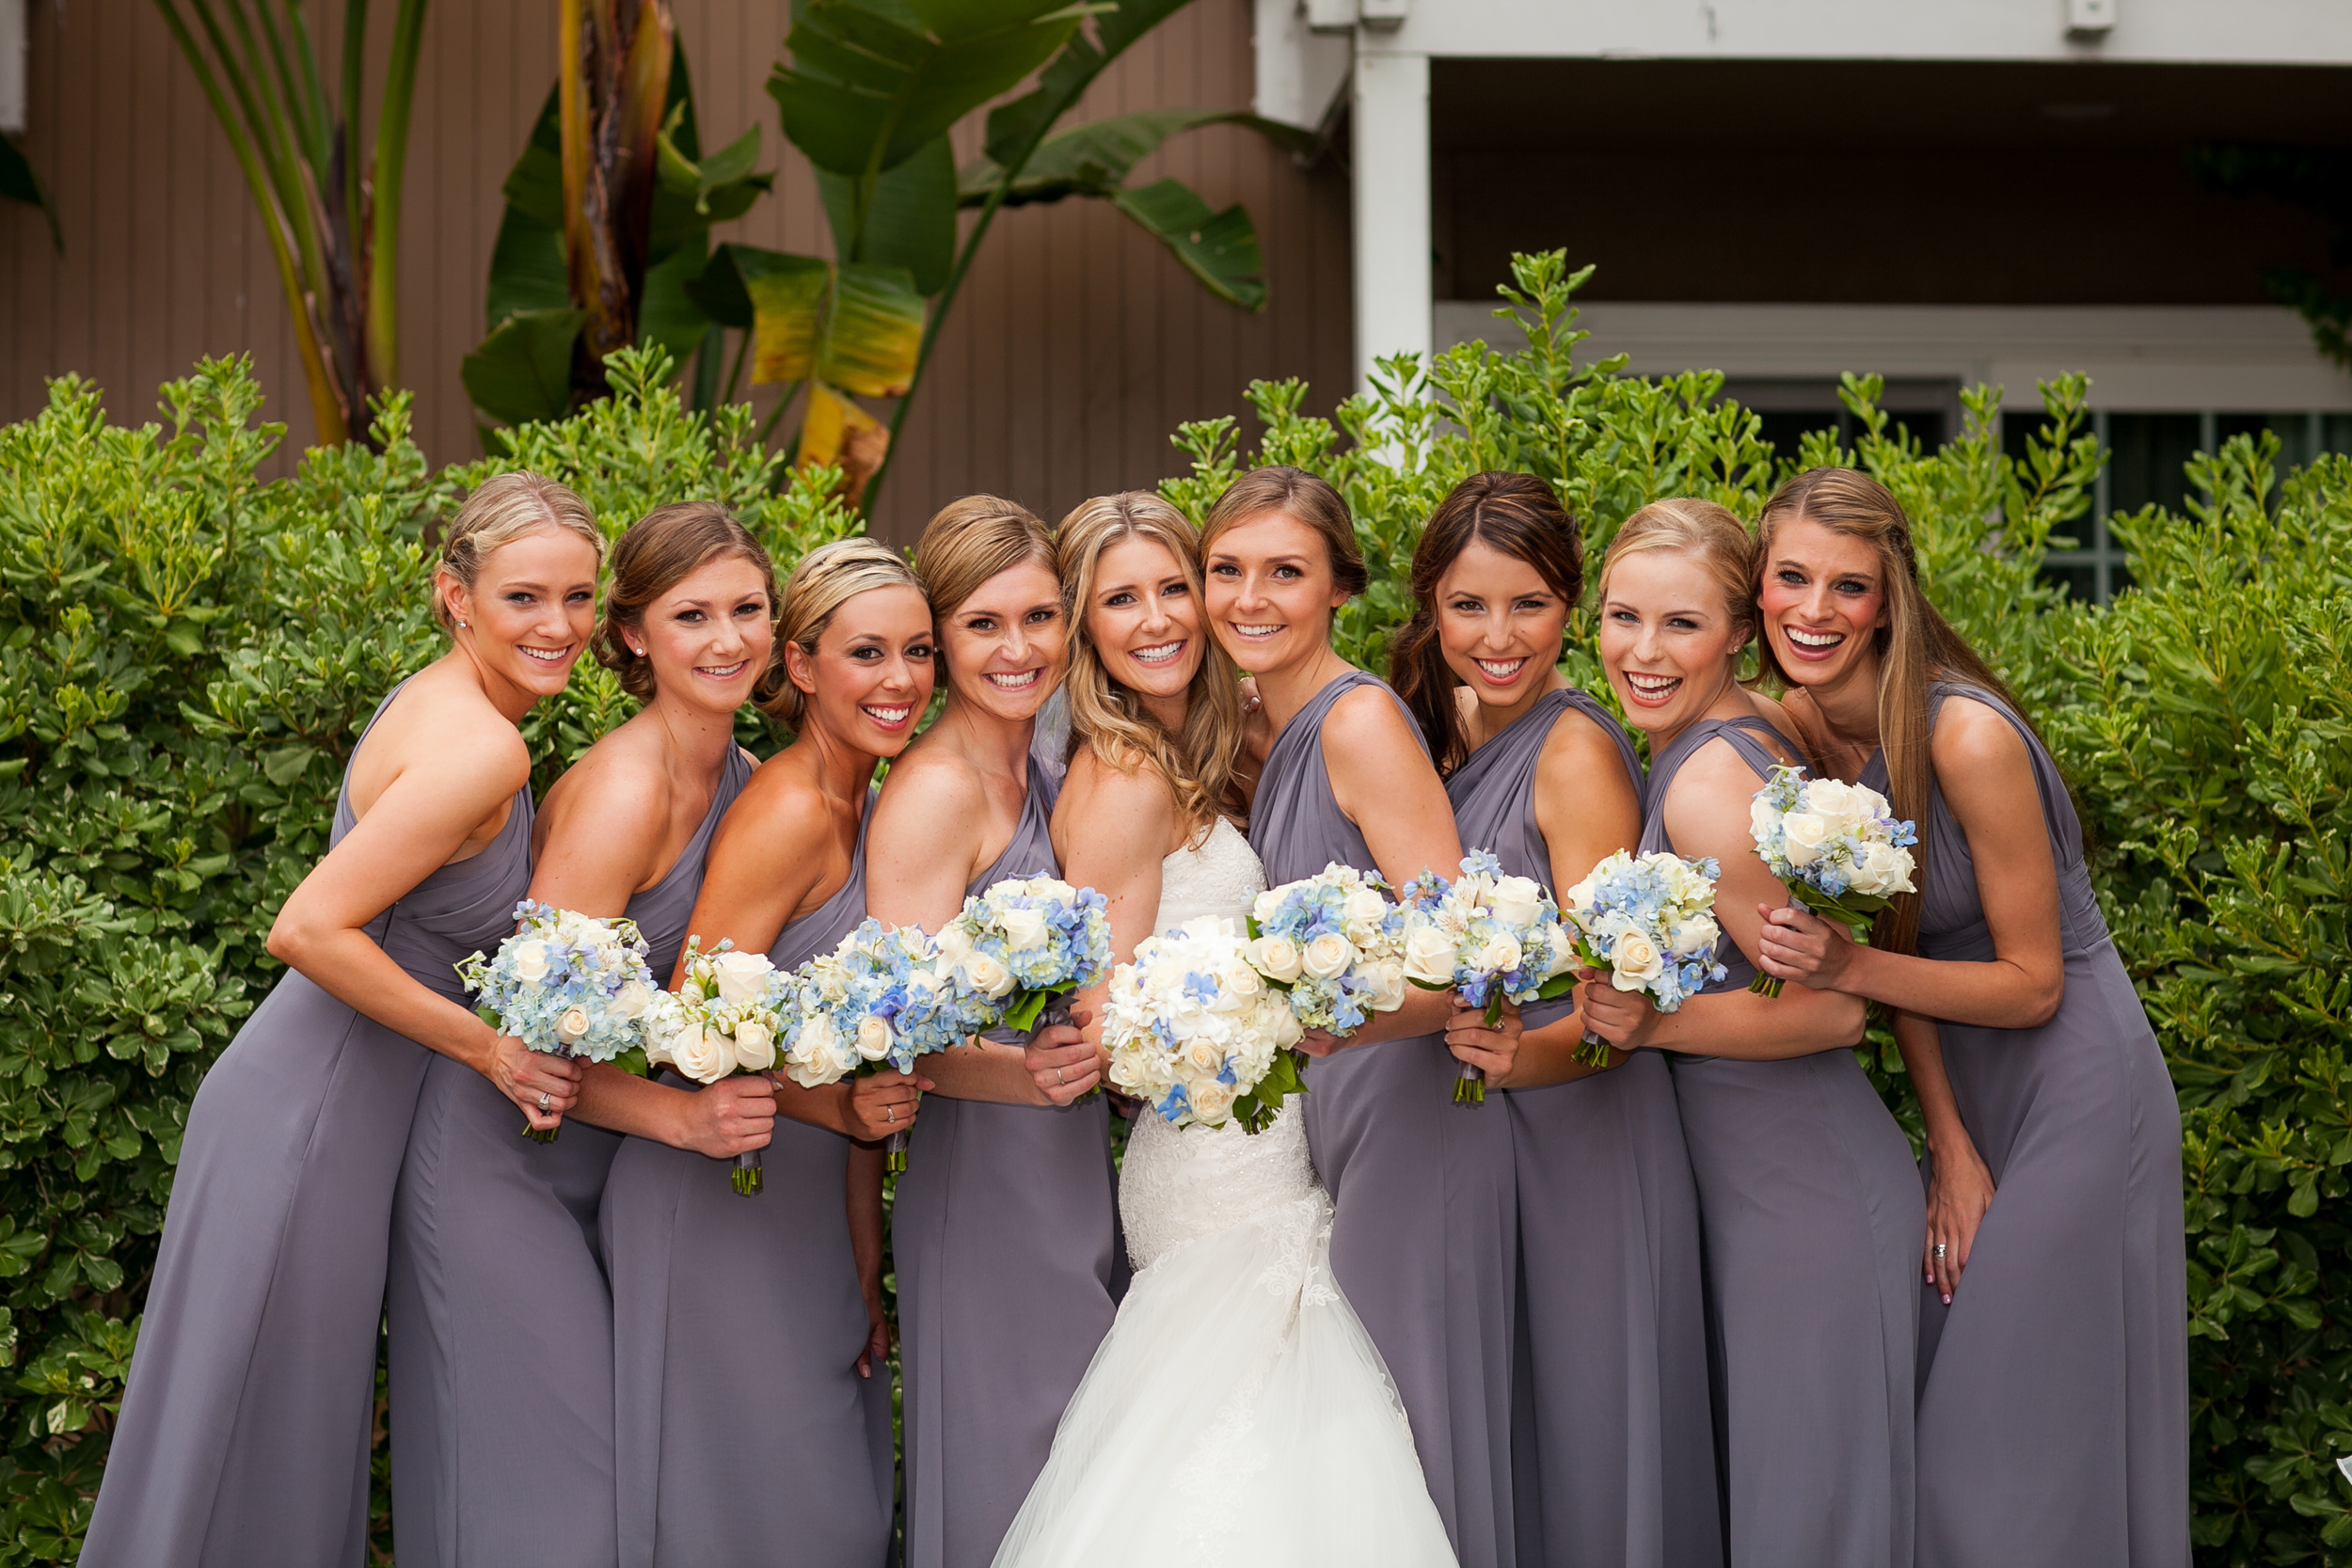 Large Bridal Party = Bad Idea — The Overwhelmed Bride